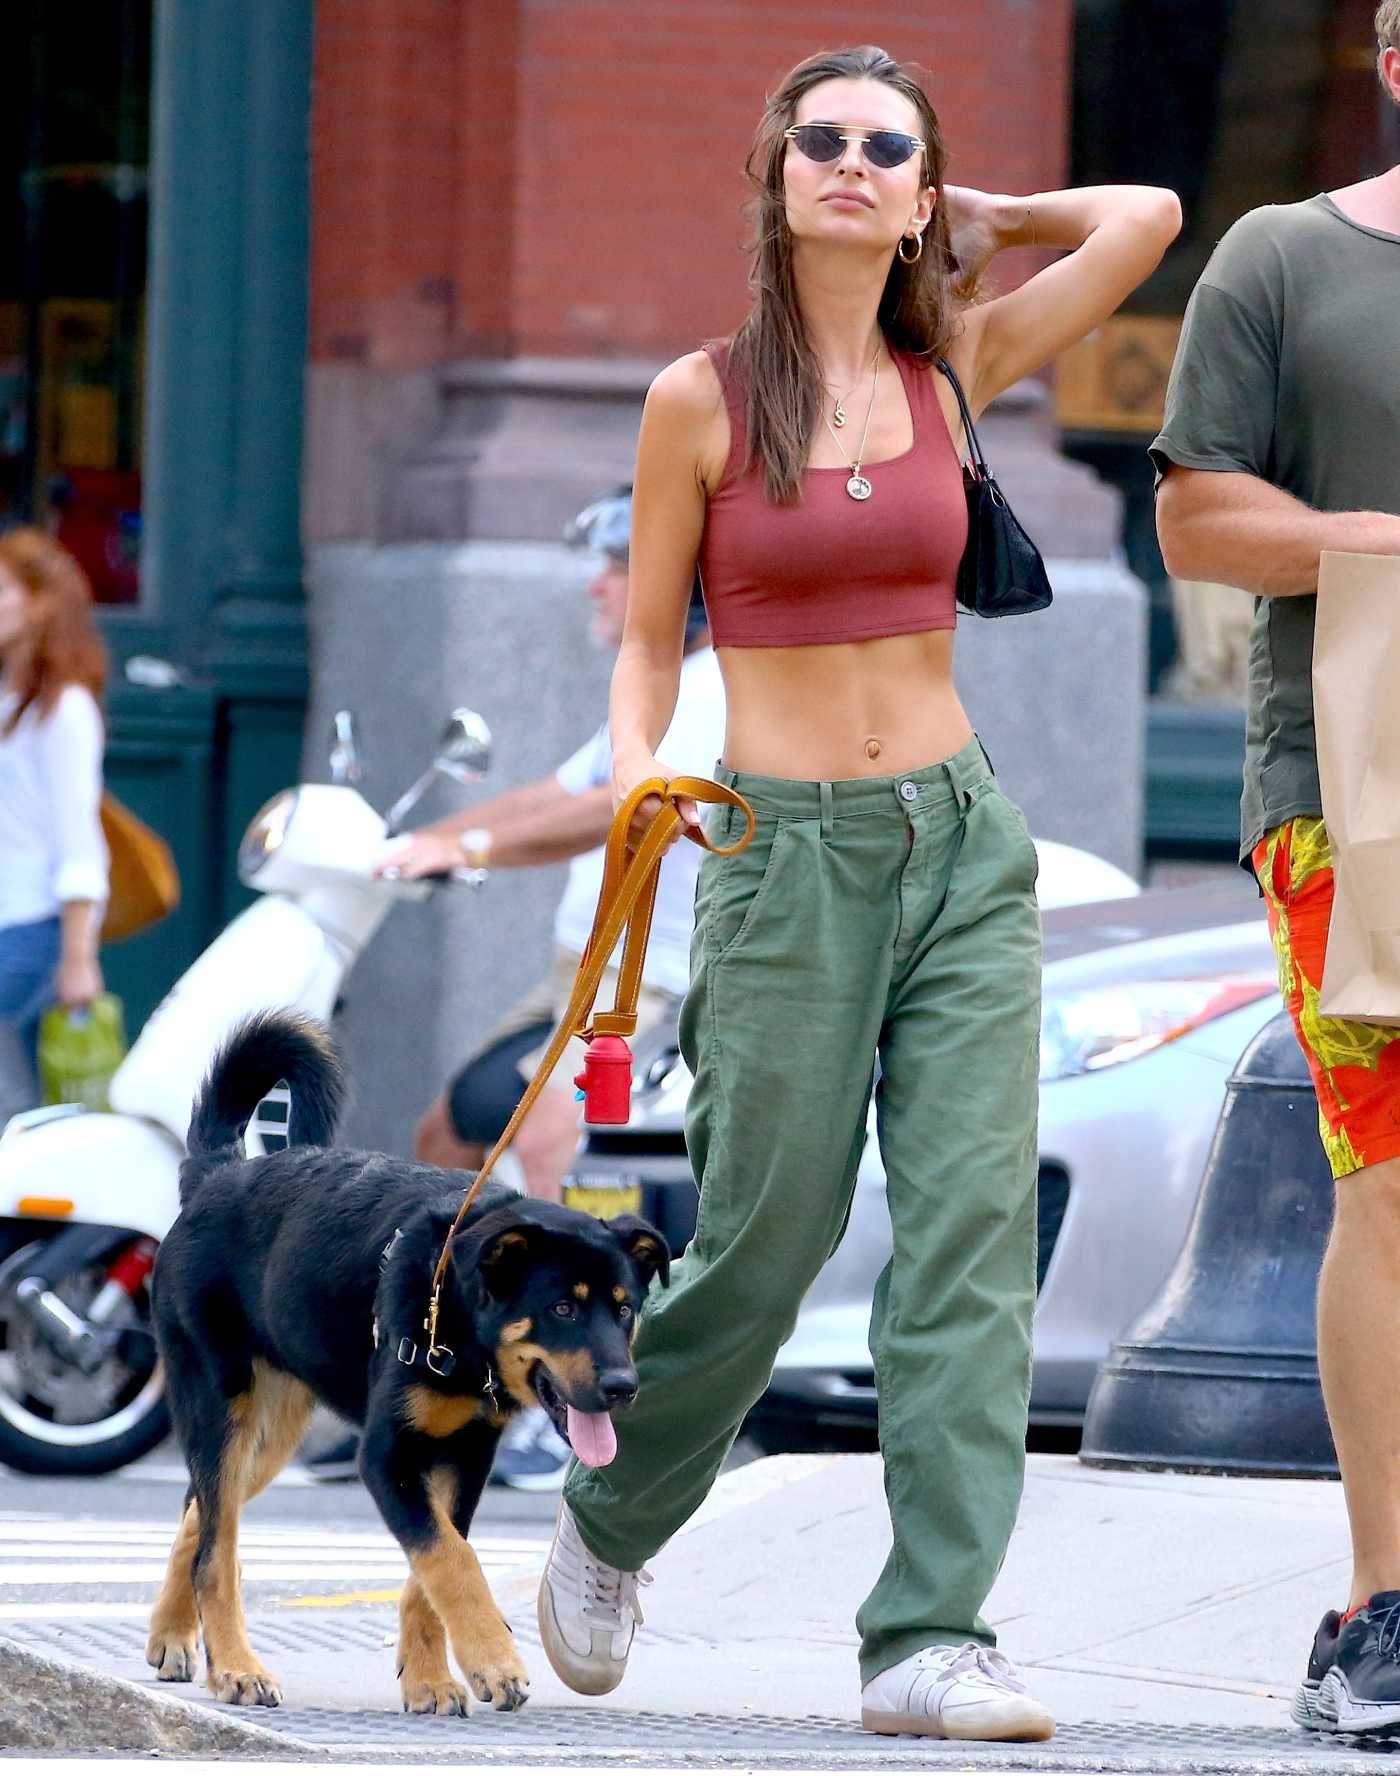 Emily Ratajkowski in a Green Pants Walks Her Dog Out with Sebastian Bear-McClard in New York City 08/17/2019